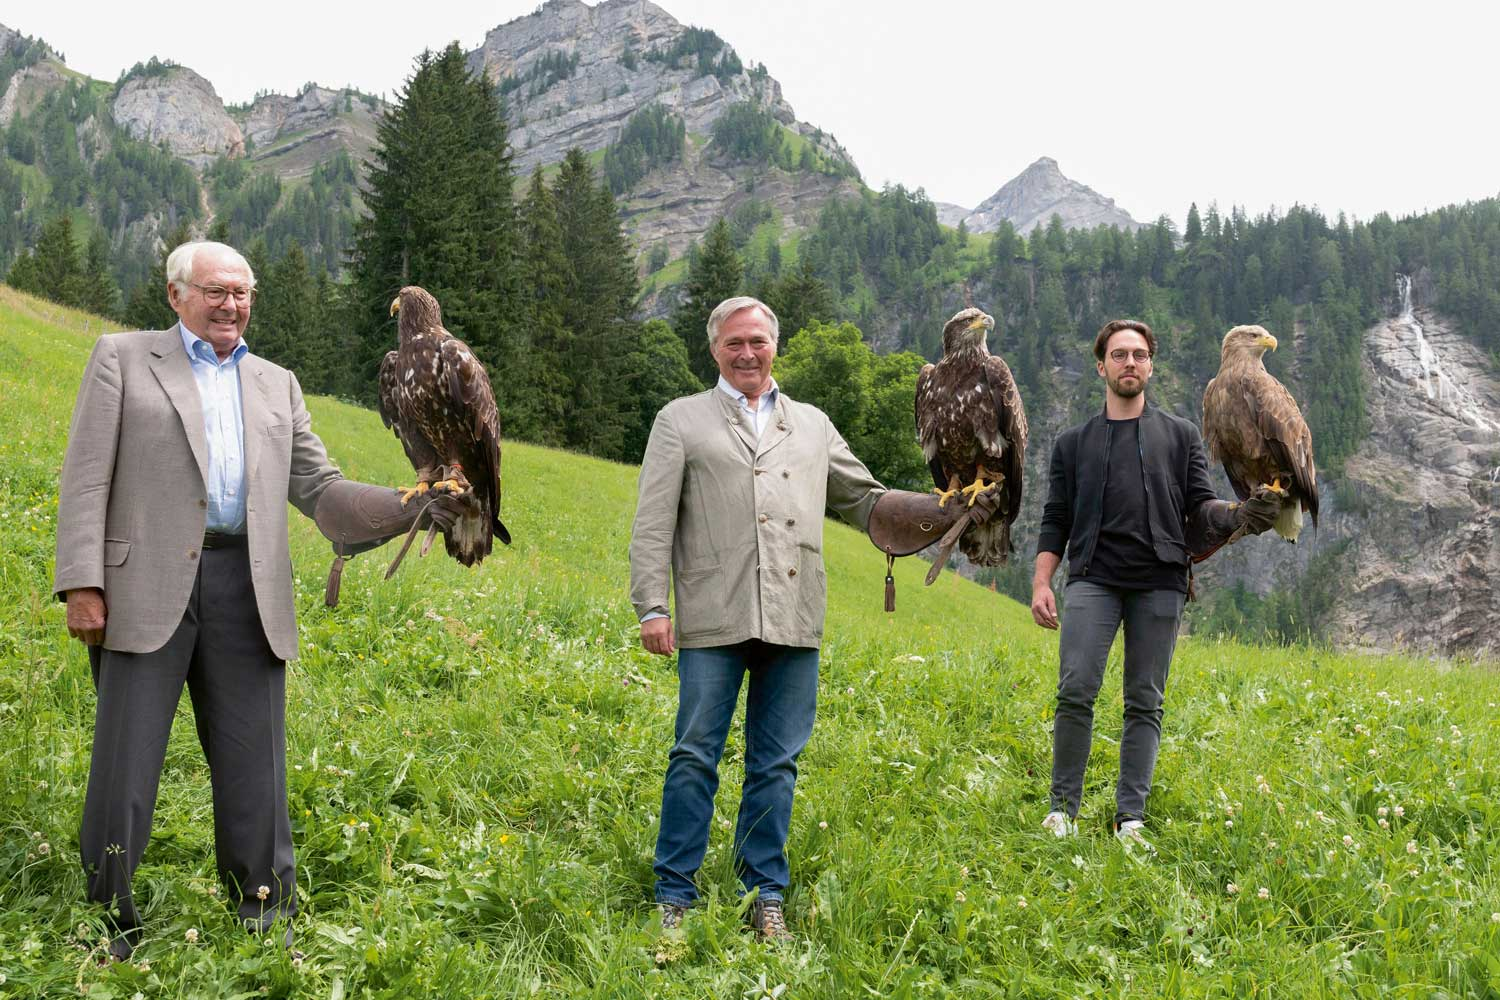 The Scheufele family with Alpine Eagles, for which the new watch is named